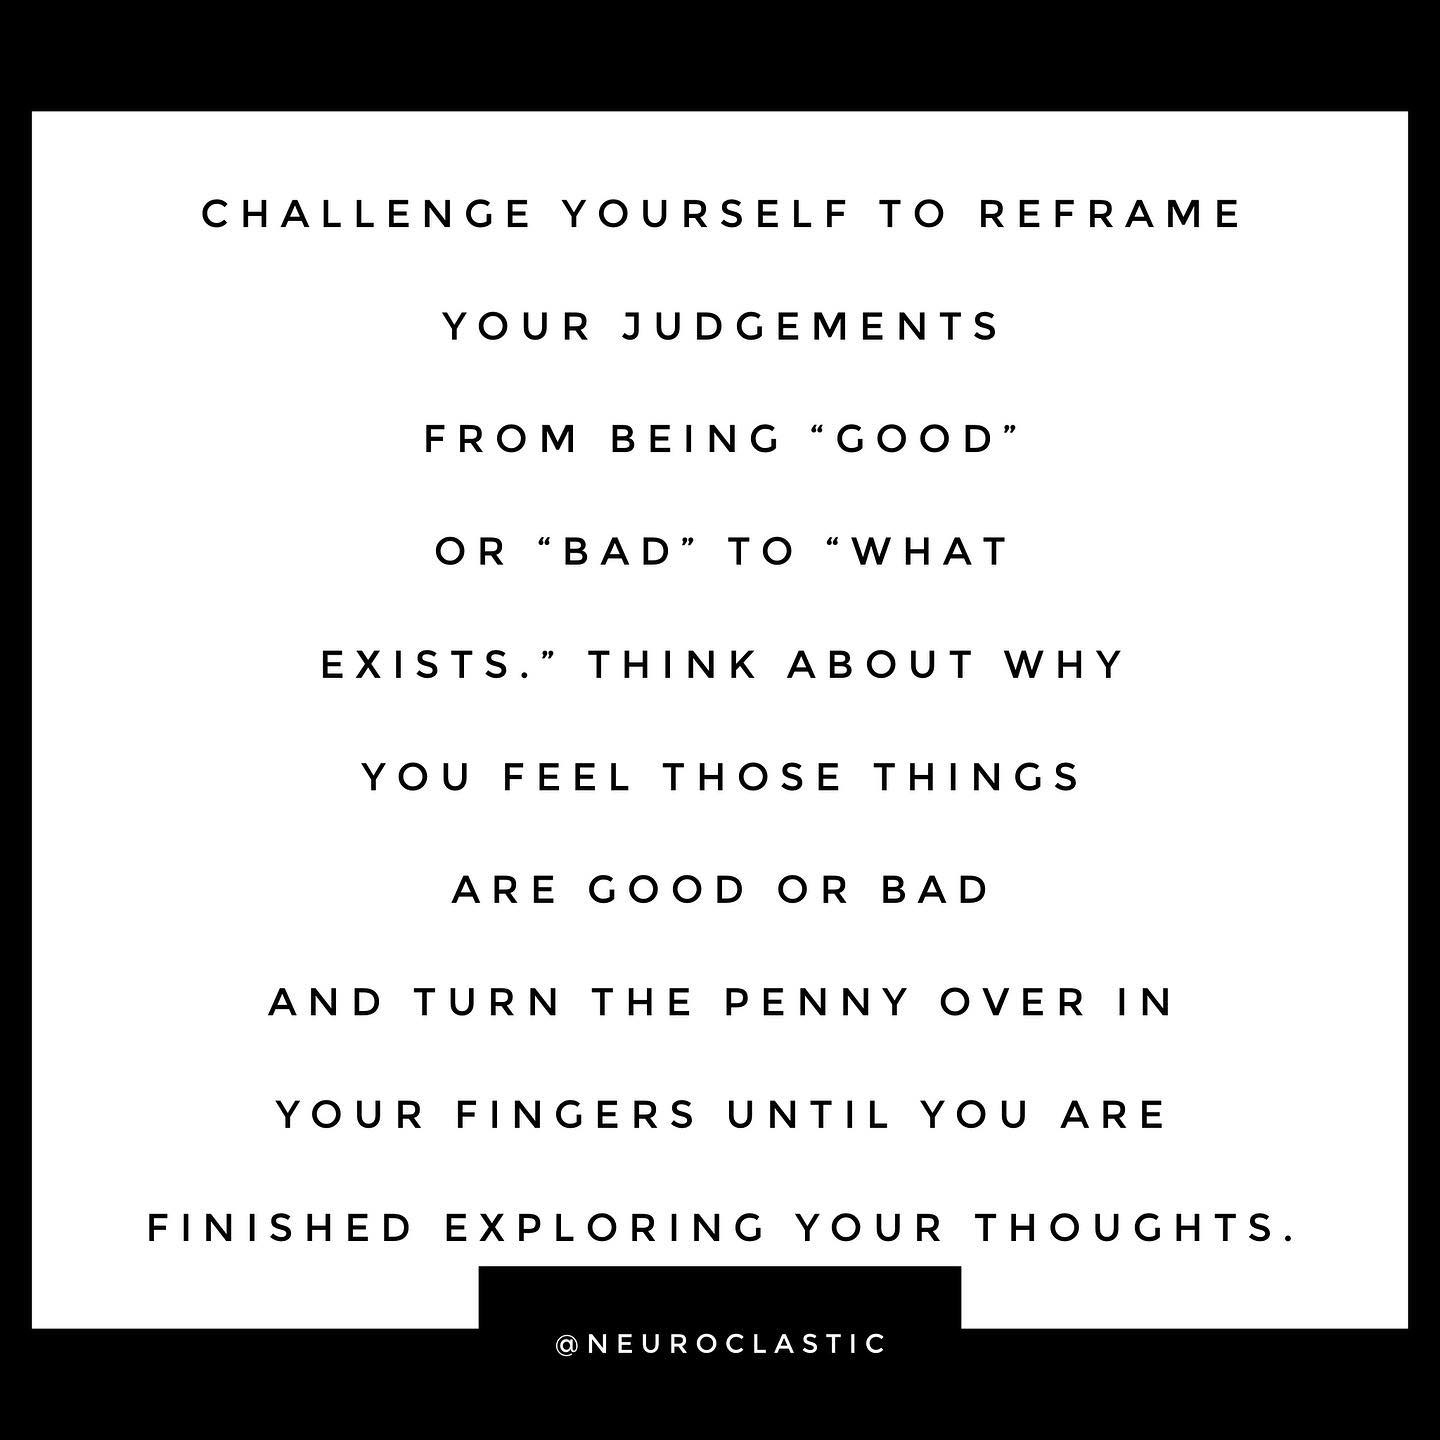 """Challenge yourself to reframe your judgements from being """"good"""" or """"bad"""" to """"what exists."""" Think about why you feel those things are good or bad and turn the penny over in your fingers until you are finished exploring your thoughts. @NeuroClastic"""